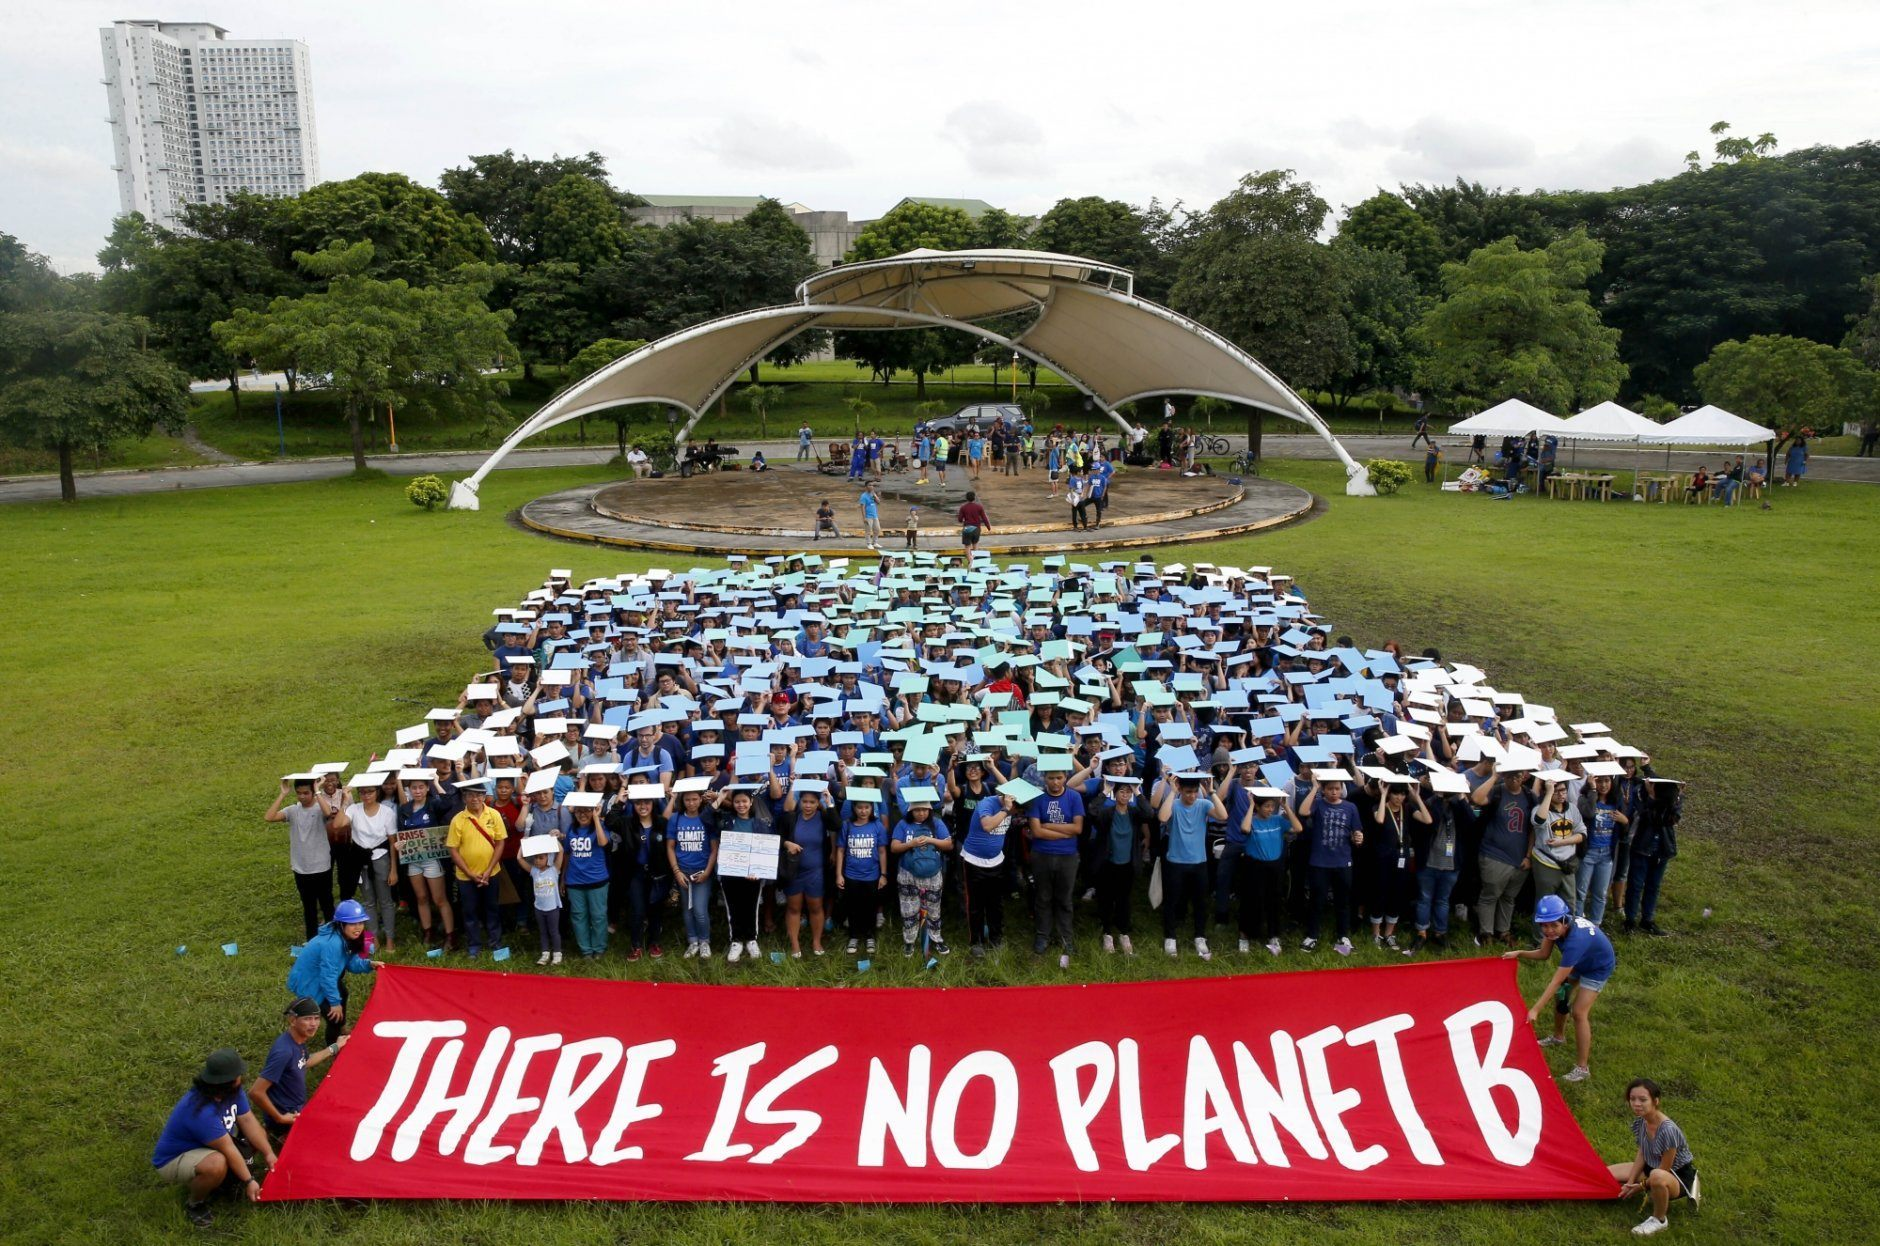 """Environmental activists, mostly students, display their message in front of """"a human globe"""" formation to coincide with the global protests on climate change Friday, Sept. 20, 2019, at the University of Philippines campus in suburban Quezon city northeast of Manila, Philippines. Various environmental groups in the country are participating in what is expected to be the world's largest mobilization on climate change known as """"Global Climate Strikes."""" (AP Photo/Bullit Marquez)"""